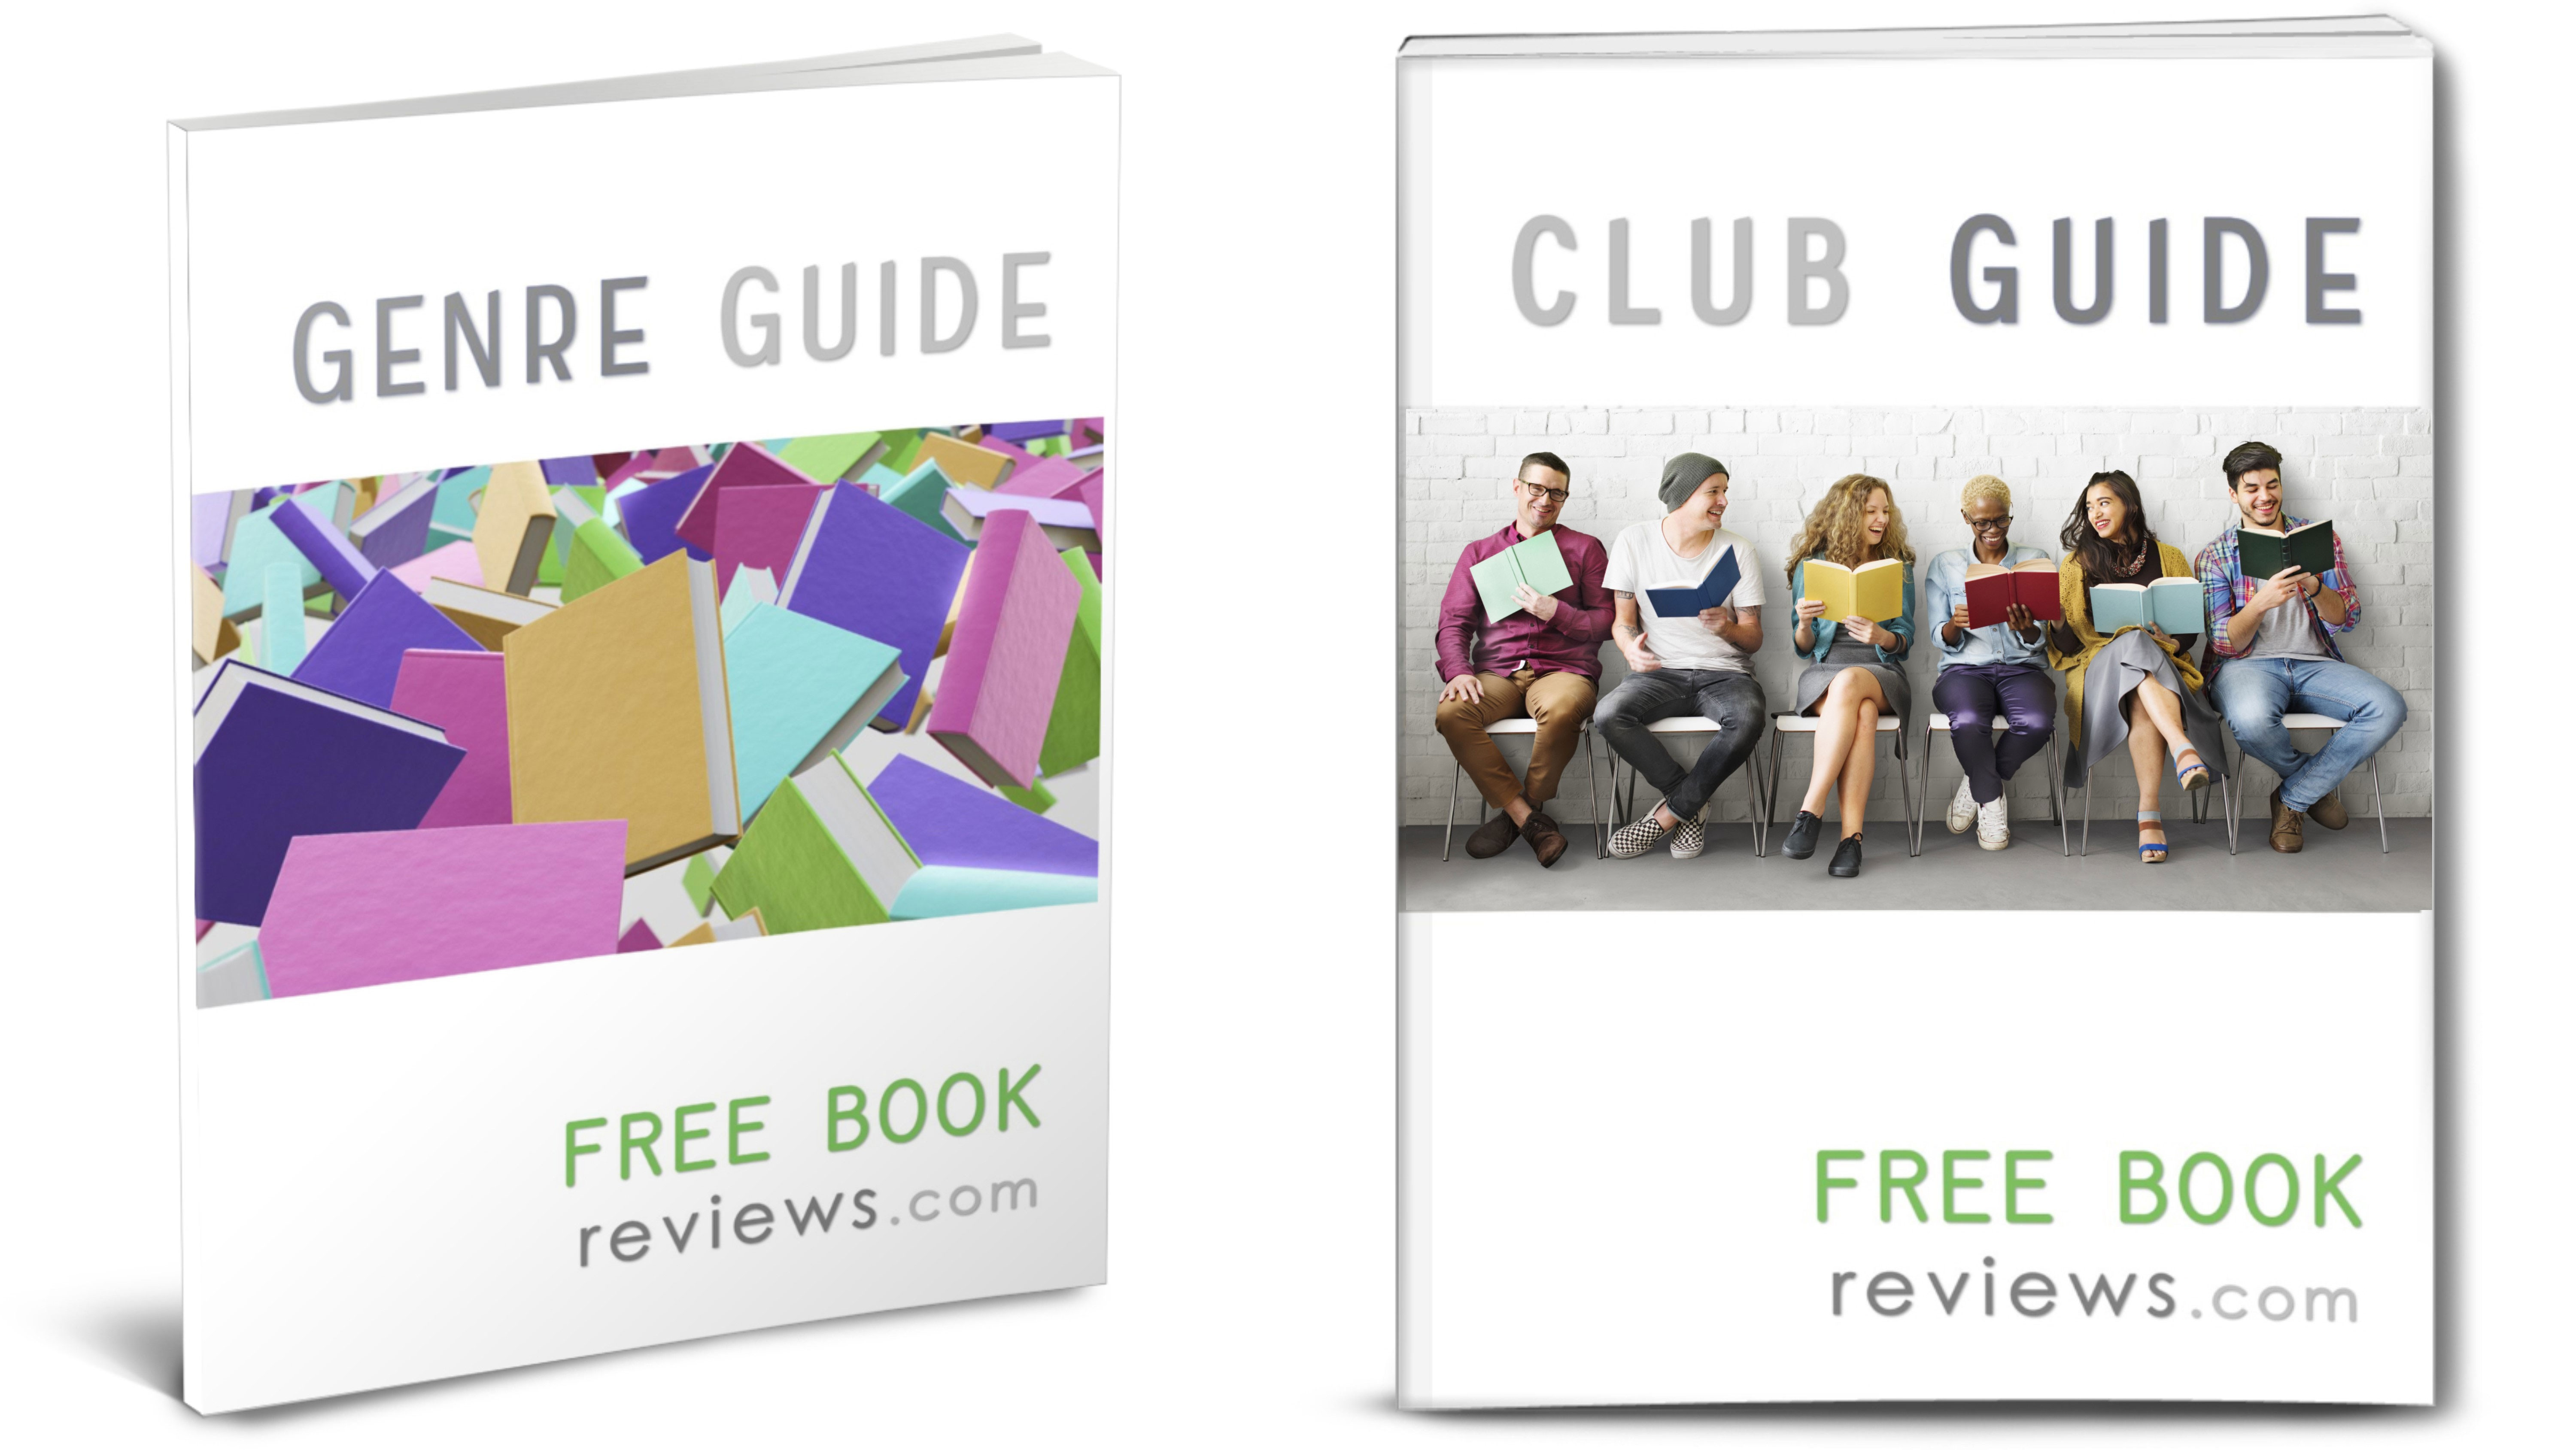 Club Guides Book Submission Successful